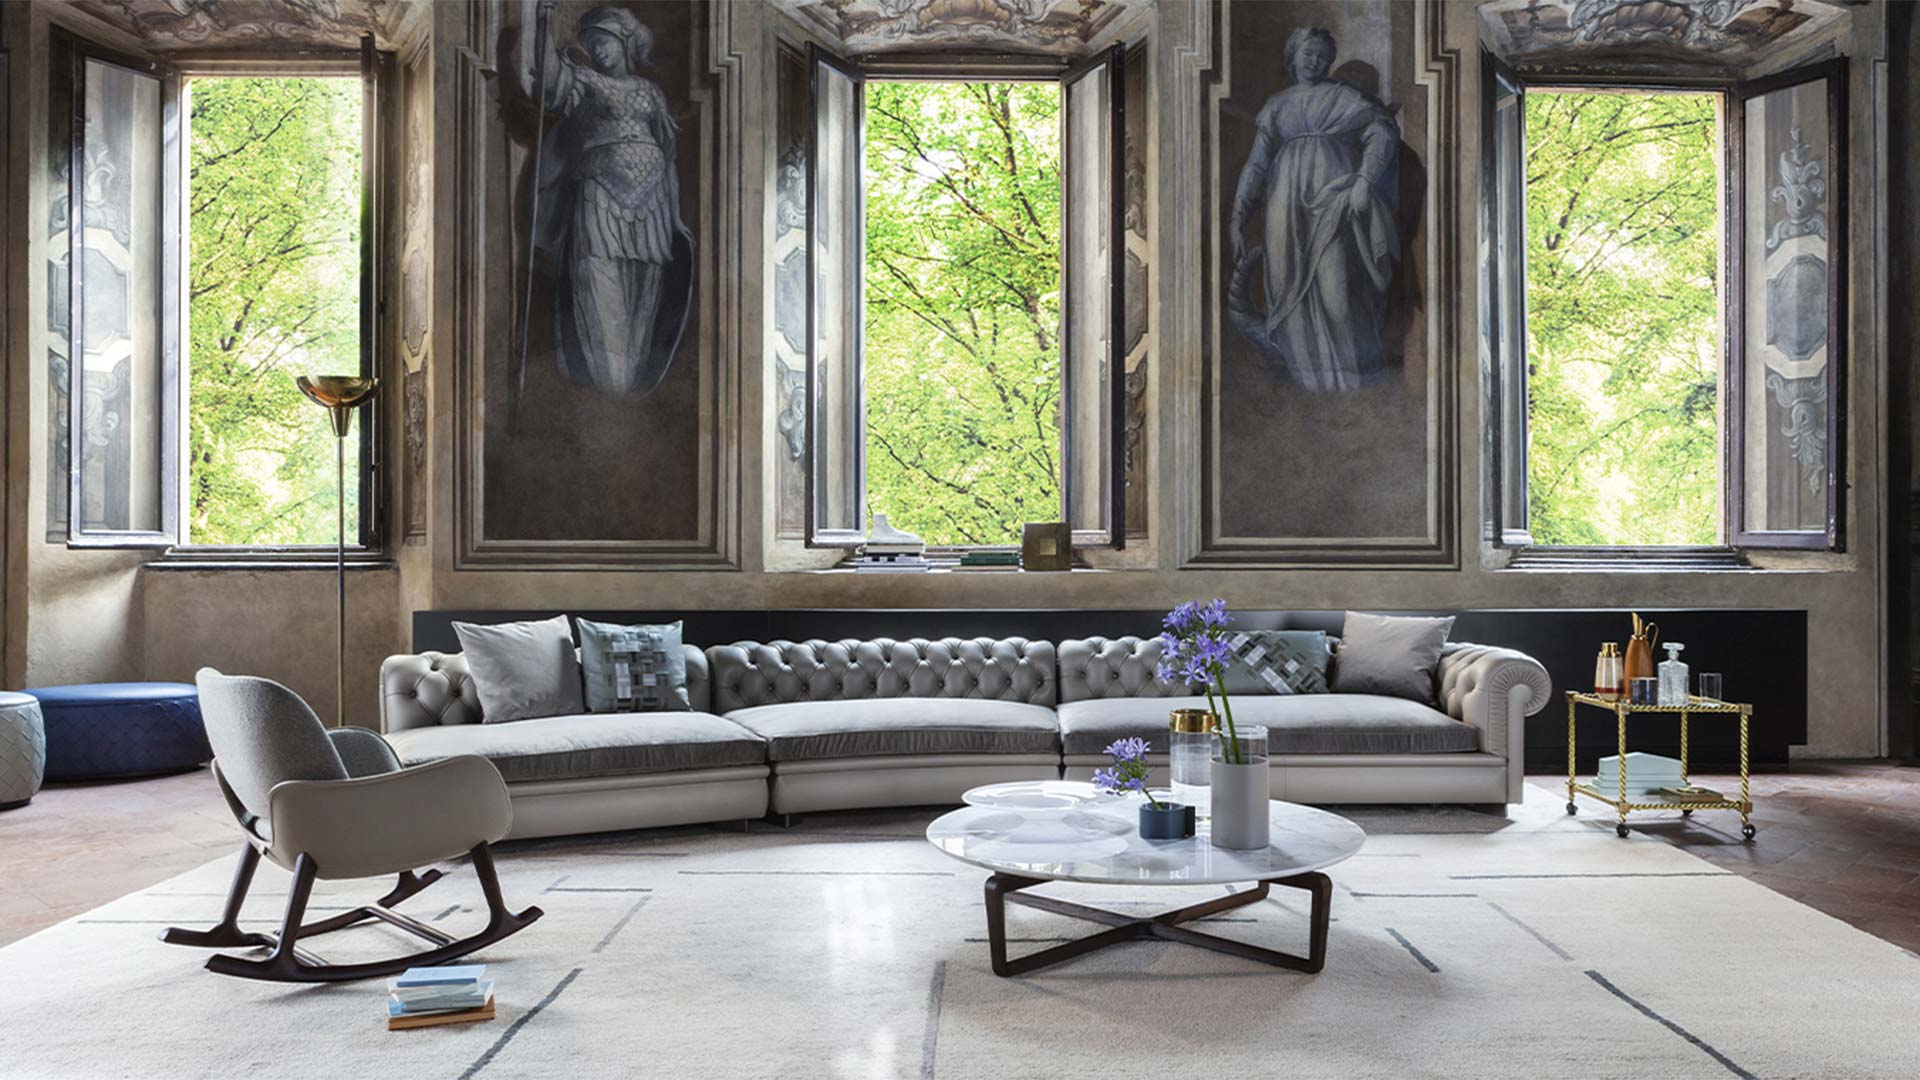 Poltrona Frau Chester Sofa in Berlin